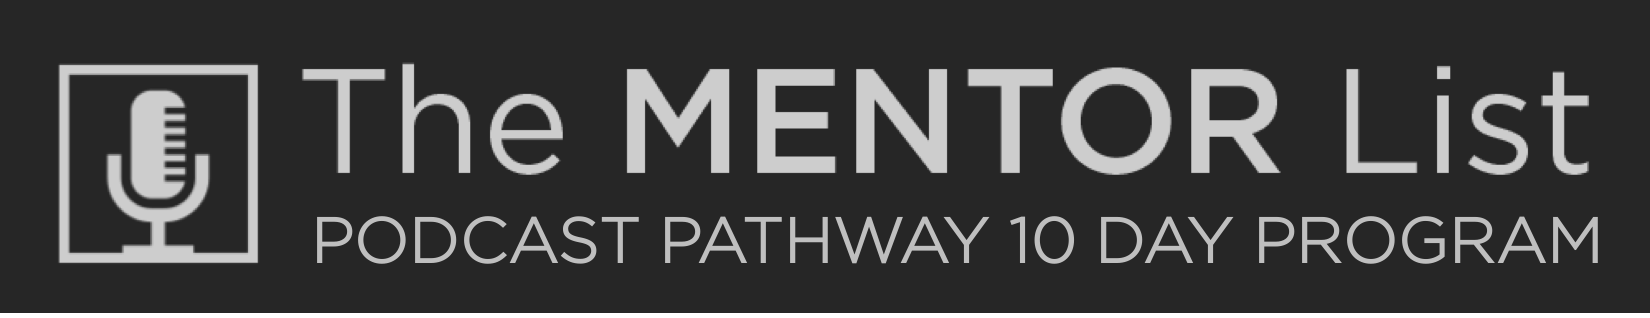 Pathway to podcasting banner image The mentor List v2.png